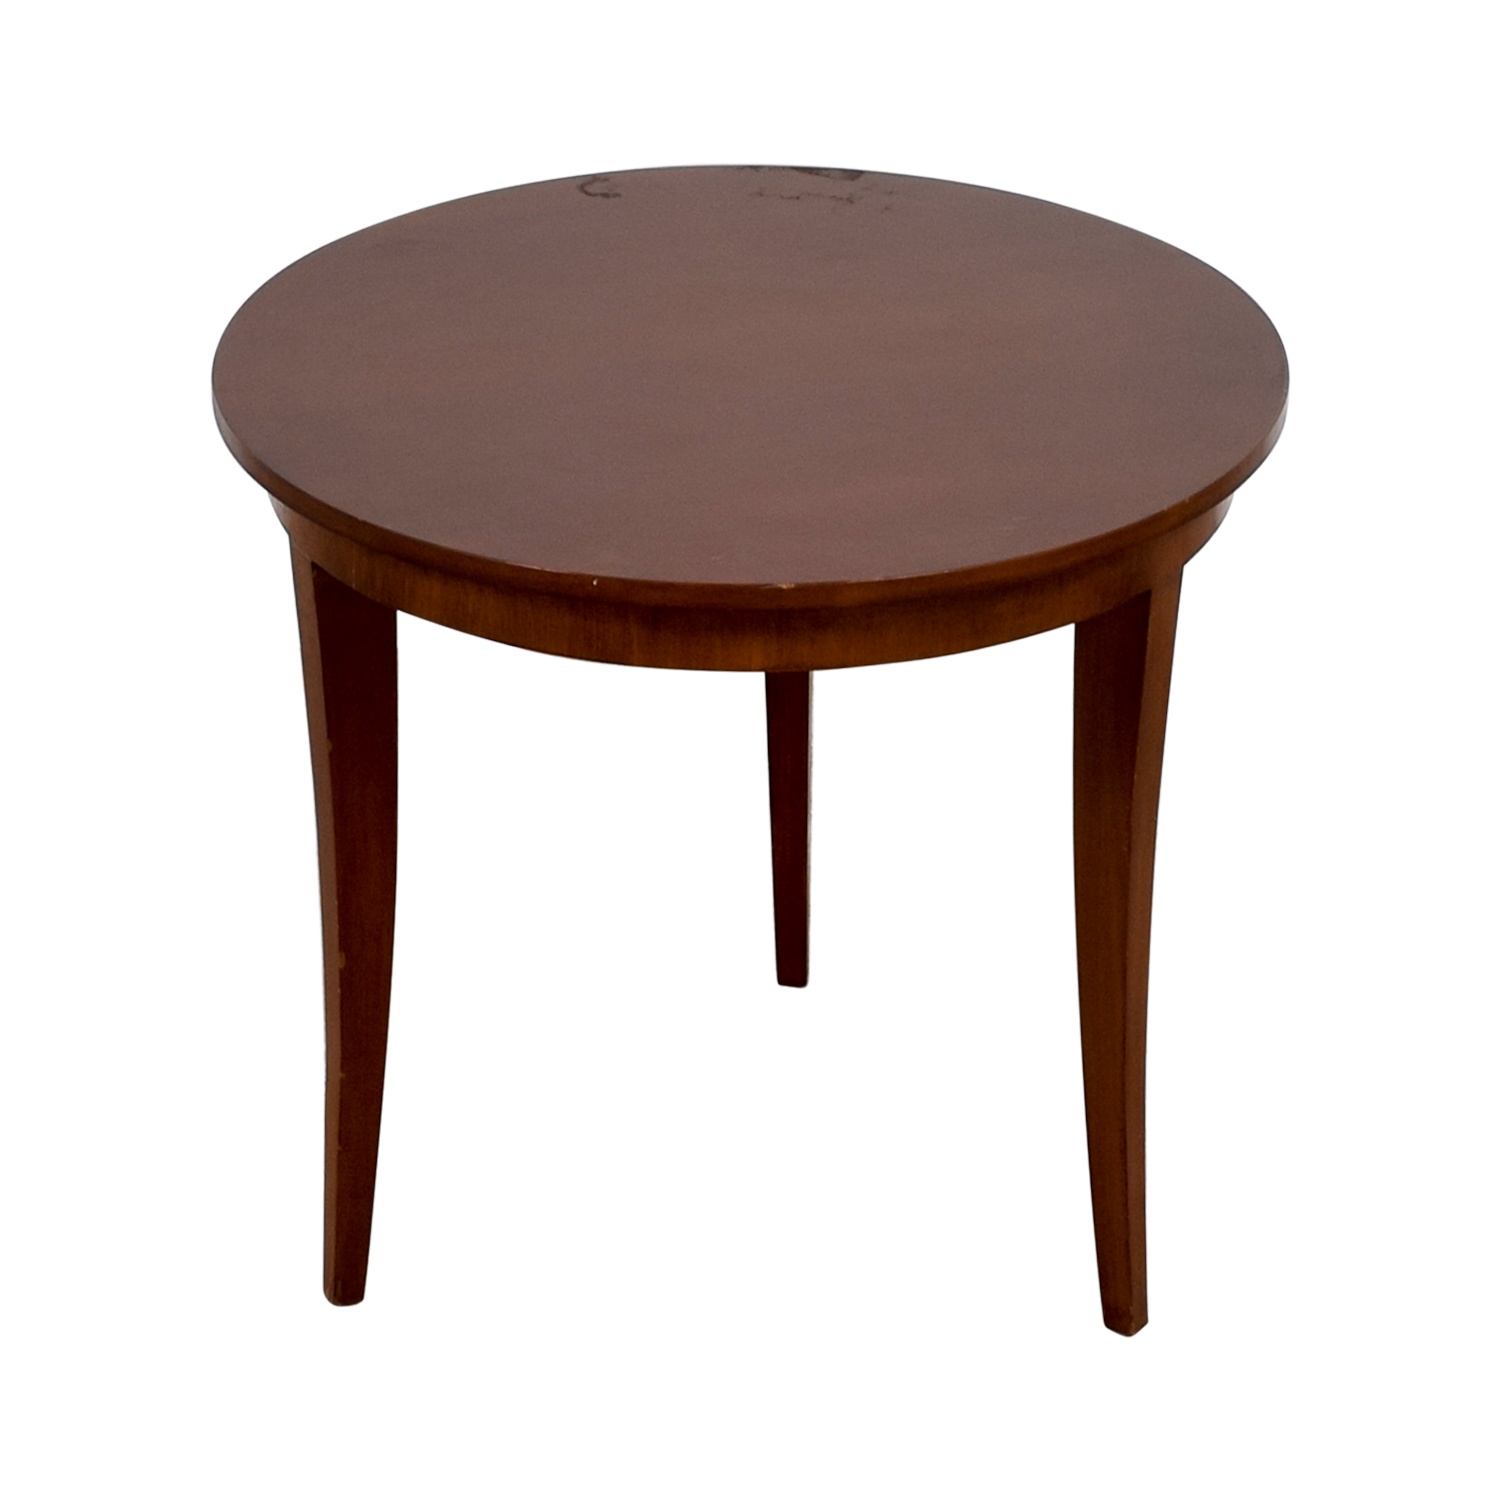 Furniture Masters Furniture Masters Round Wood End Table second hand